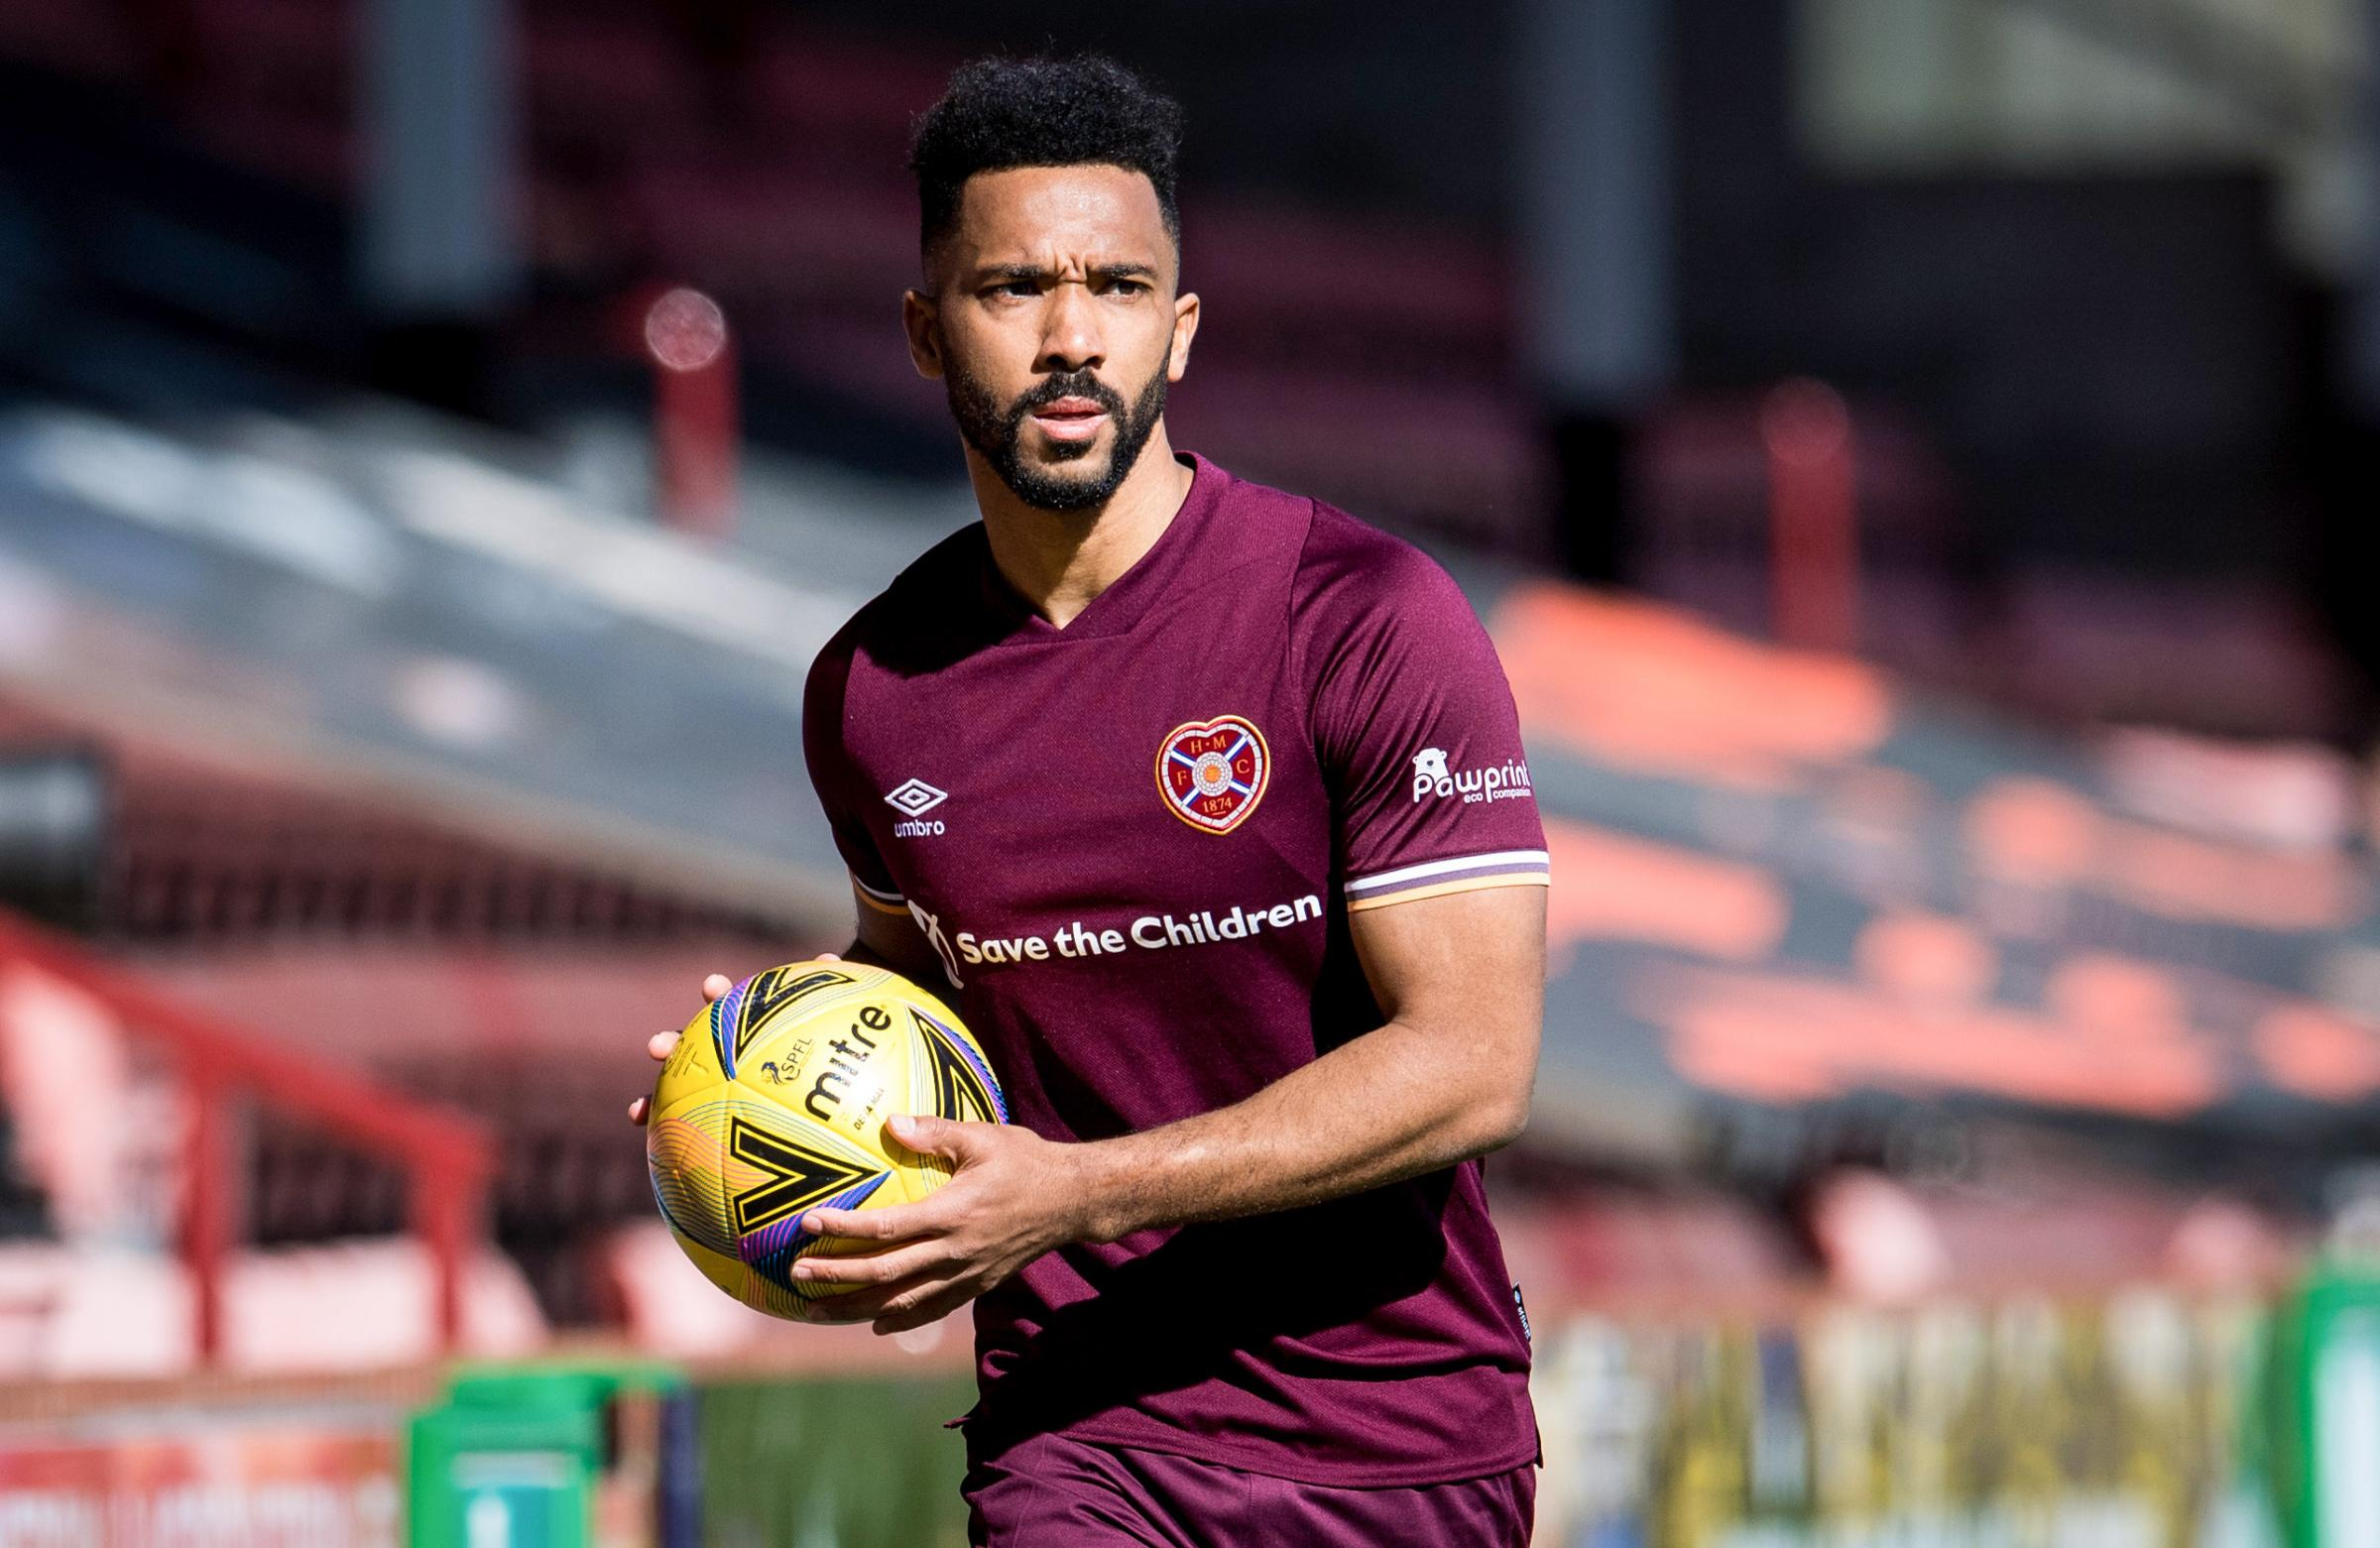 Former Aberdeen defender Shay Logan signs three-year deal with Cove Rangers